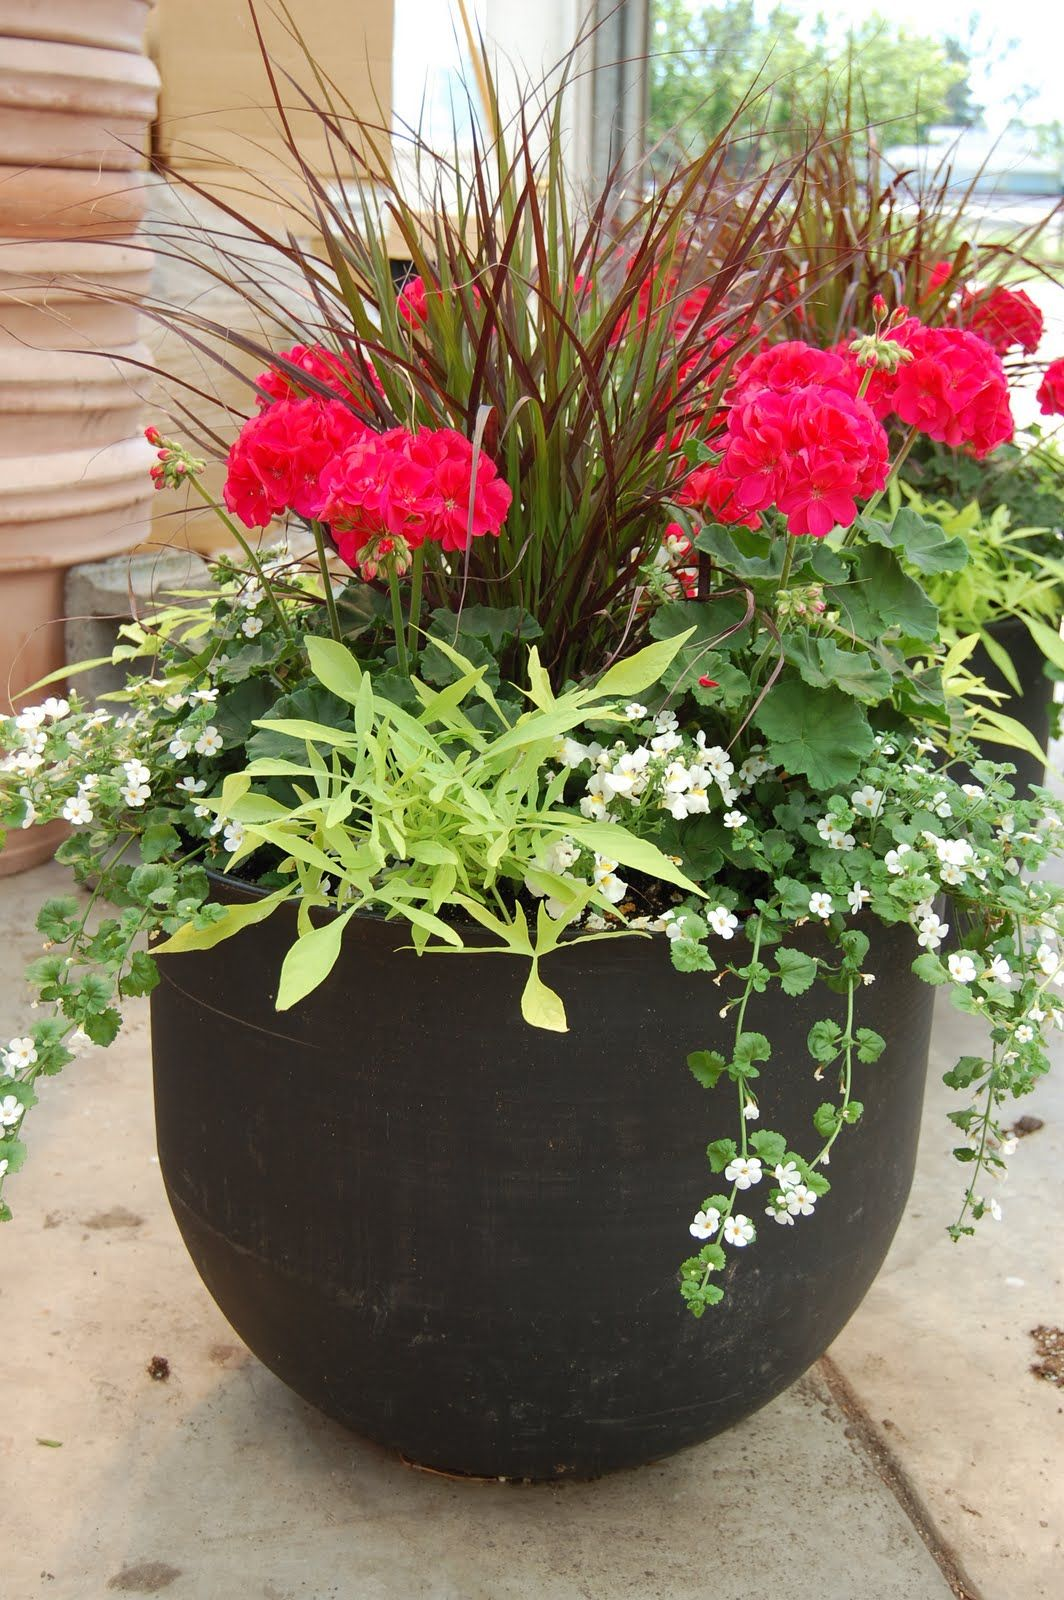 Proud Of Your Plants In Pots Send Them To Us And They Can Join Our Gallery Drainsmart Gmail Co Flower Pots Outdoor Potted Plants Outdoor Patio Flower Pots